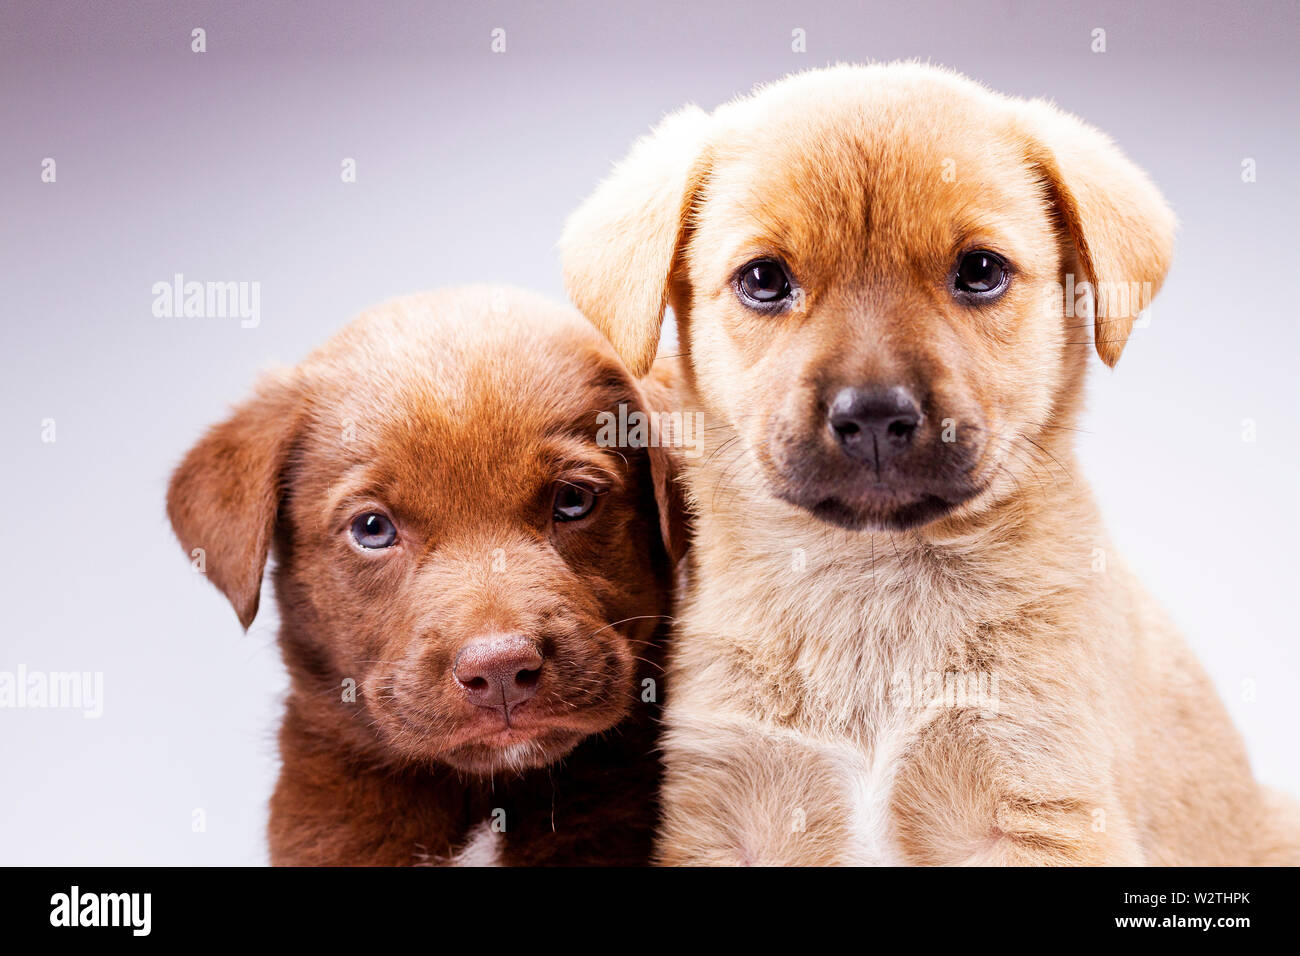 Two Cute Puppies On White Background Pets Stock Photo